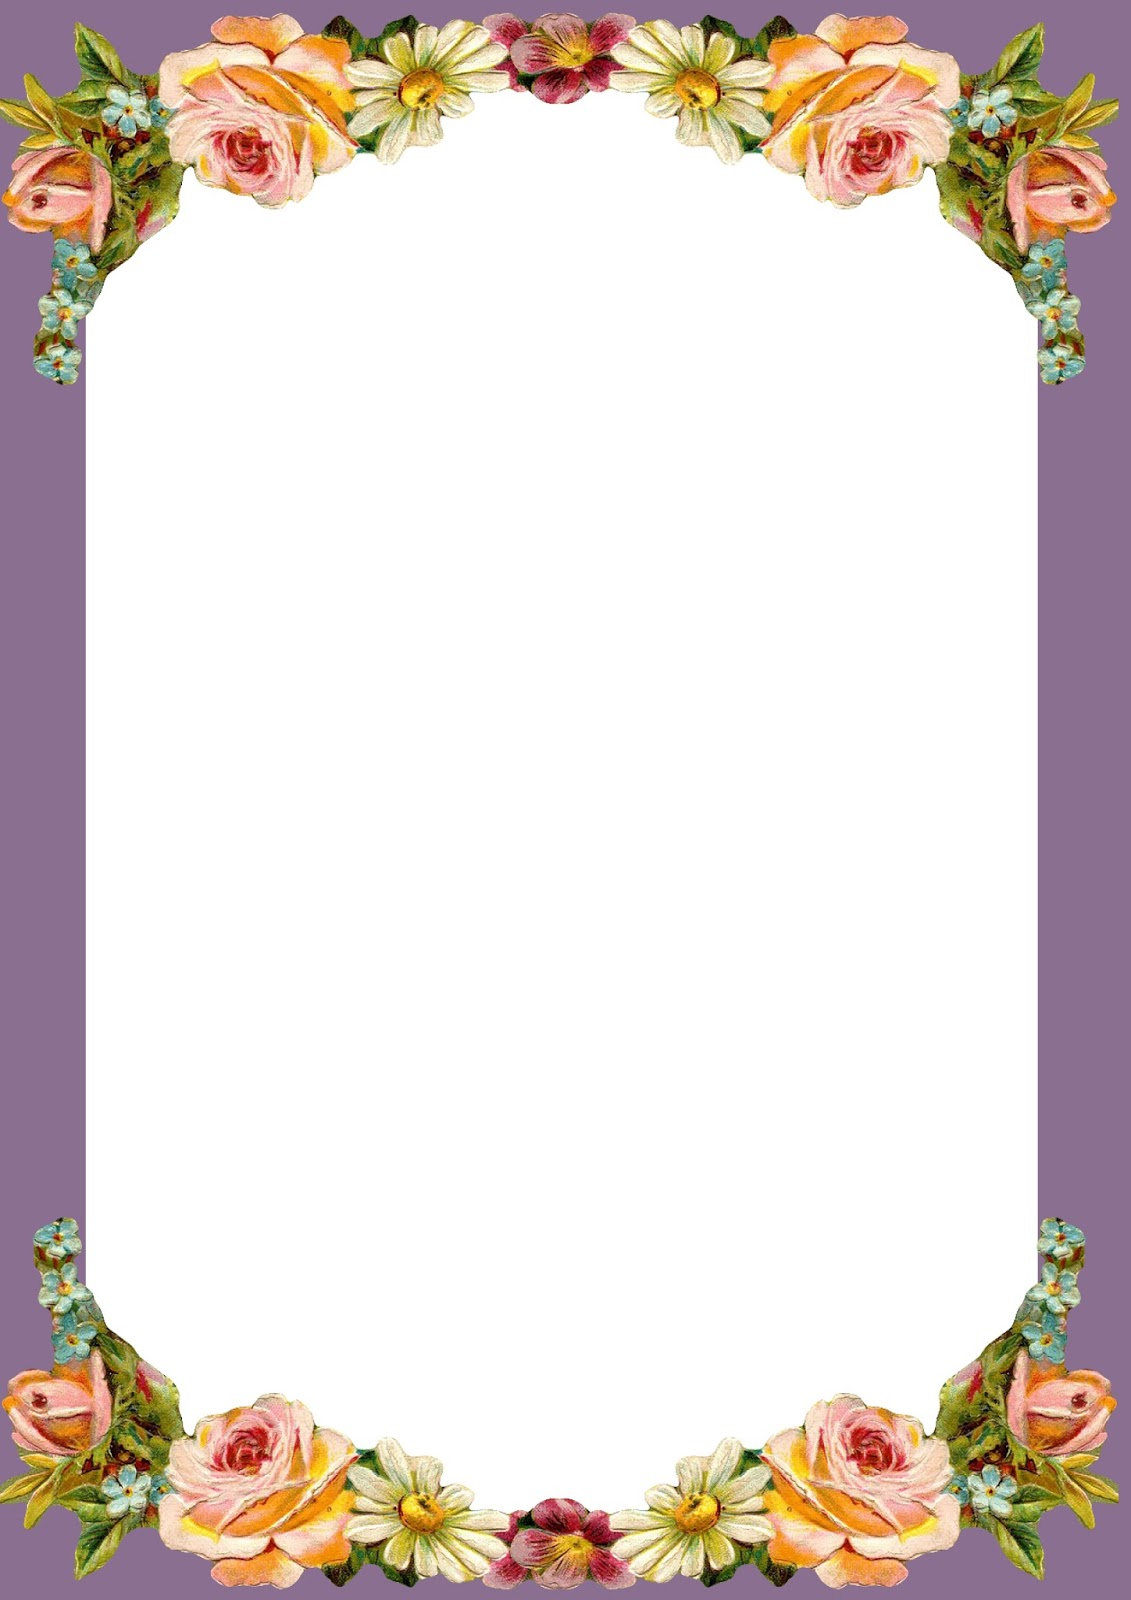 Juicy image intended for free printable stationary borders